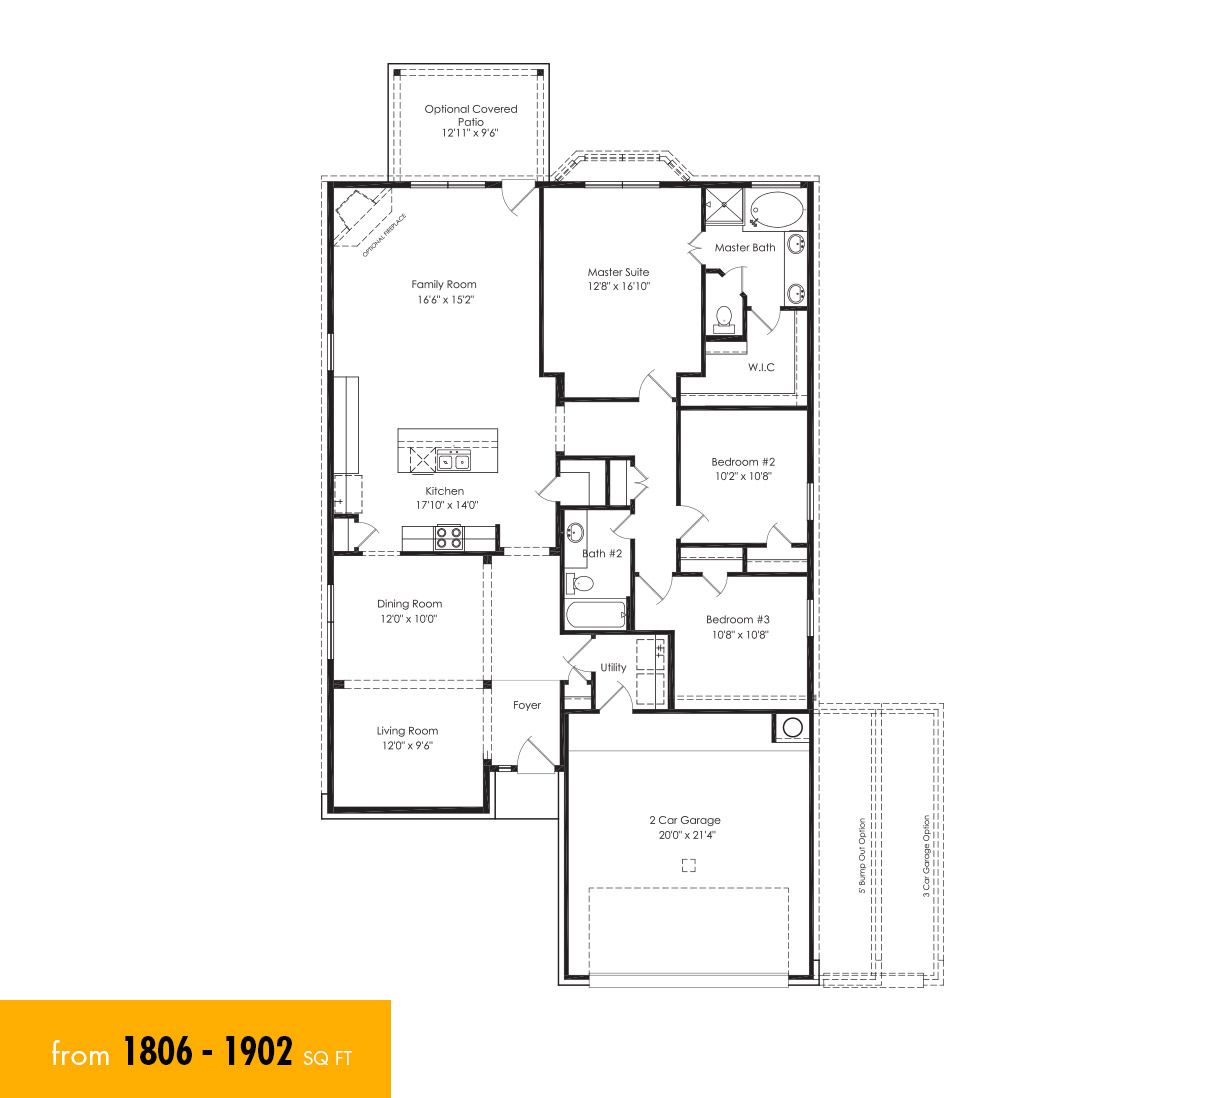 floor plan new home floorplans pinterest house